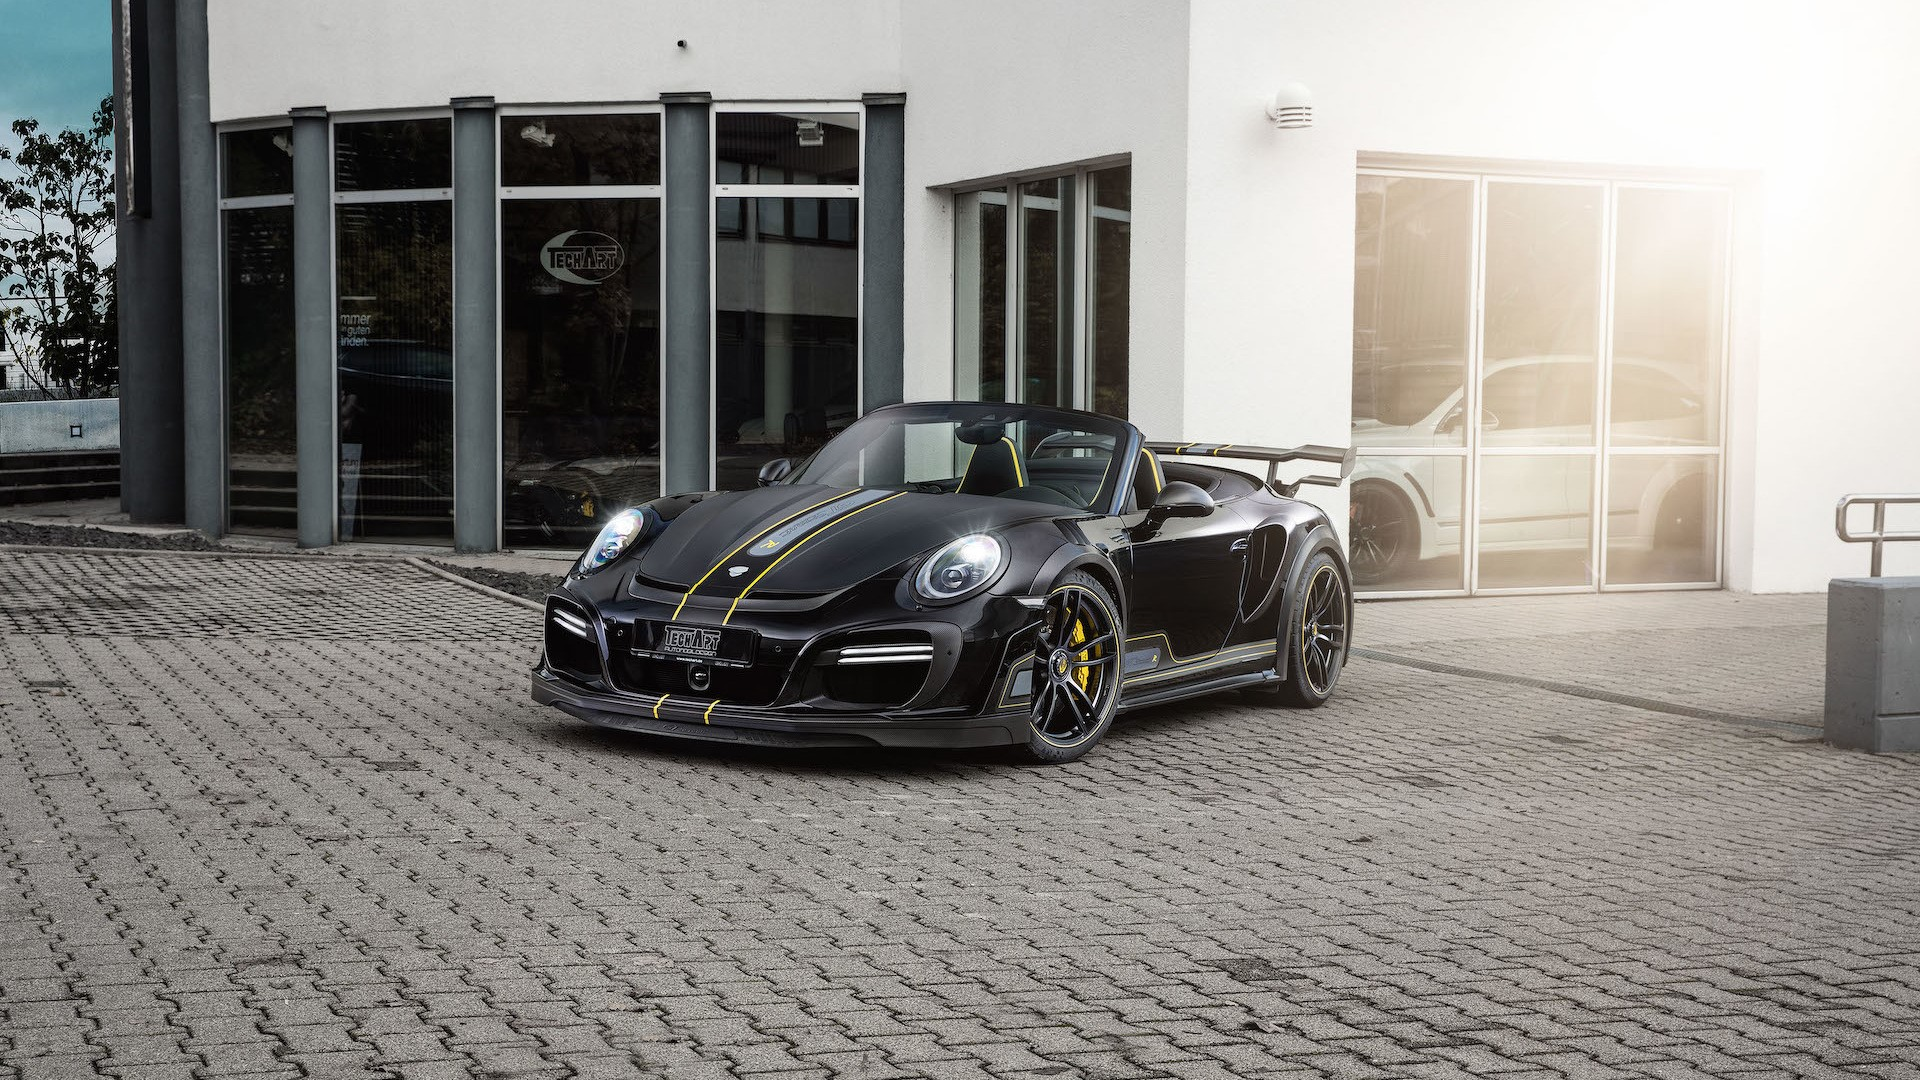 Porshce 911 Turbo Cabriolet by Techart (3)